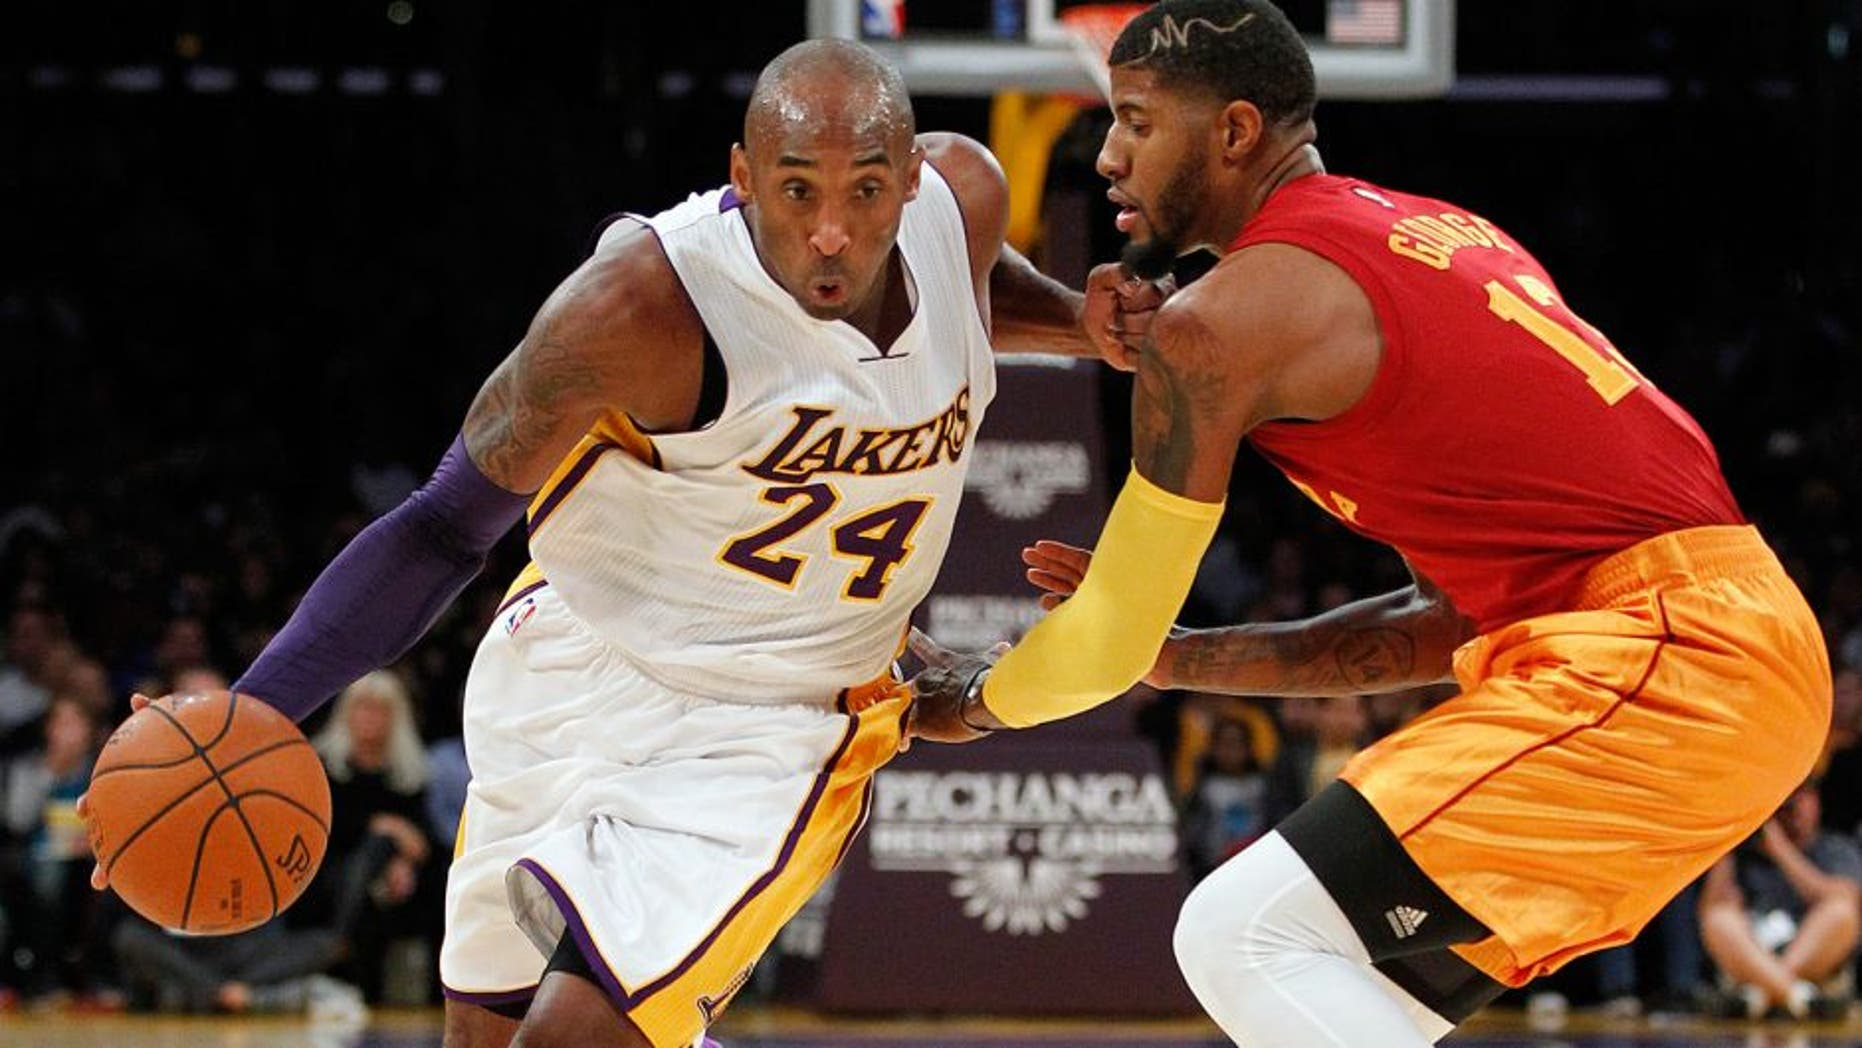 Los Angeles Lakers forward Kobe Bryant (24) drives against Indiana Pacers forward Paul George, right, during the first half of an NBA basketball game in Los Angeles, Sunday, Nov. 29, 2015. (AP Photo/Alex Gallardo)